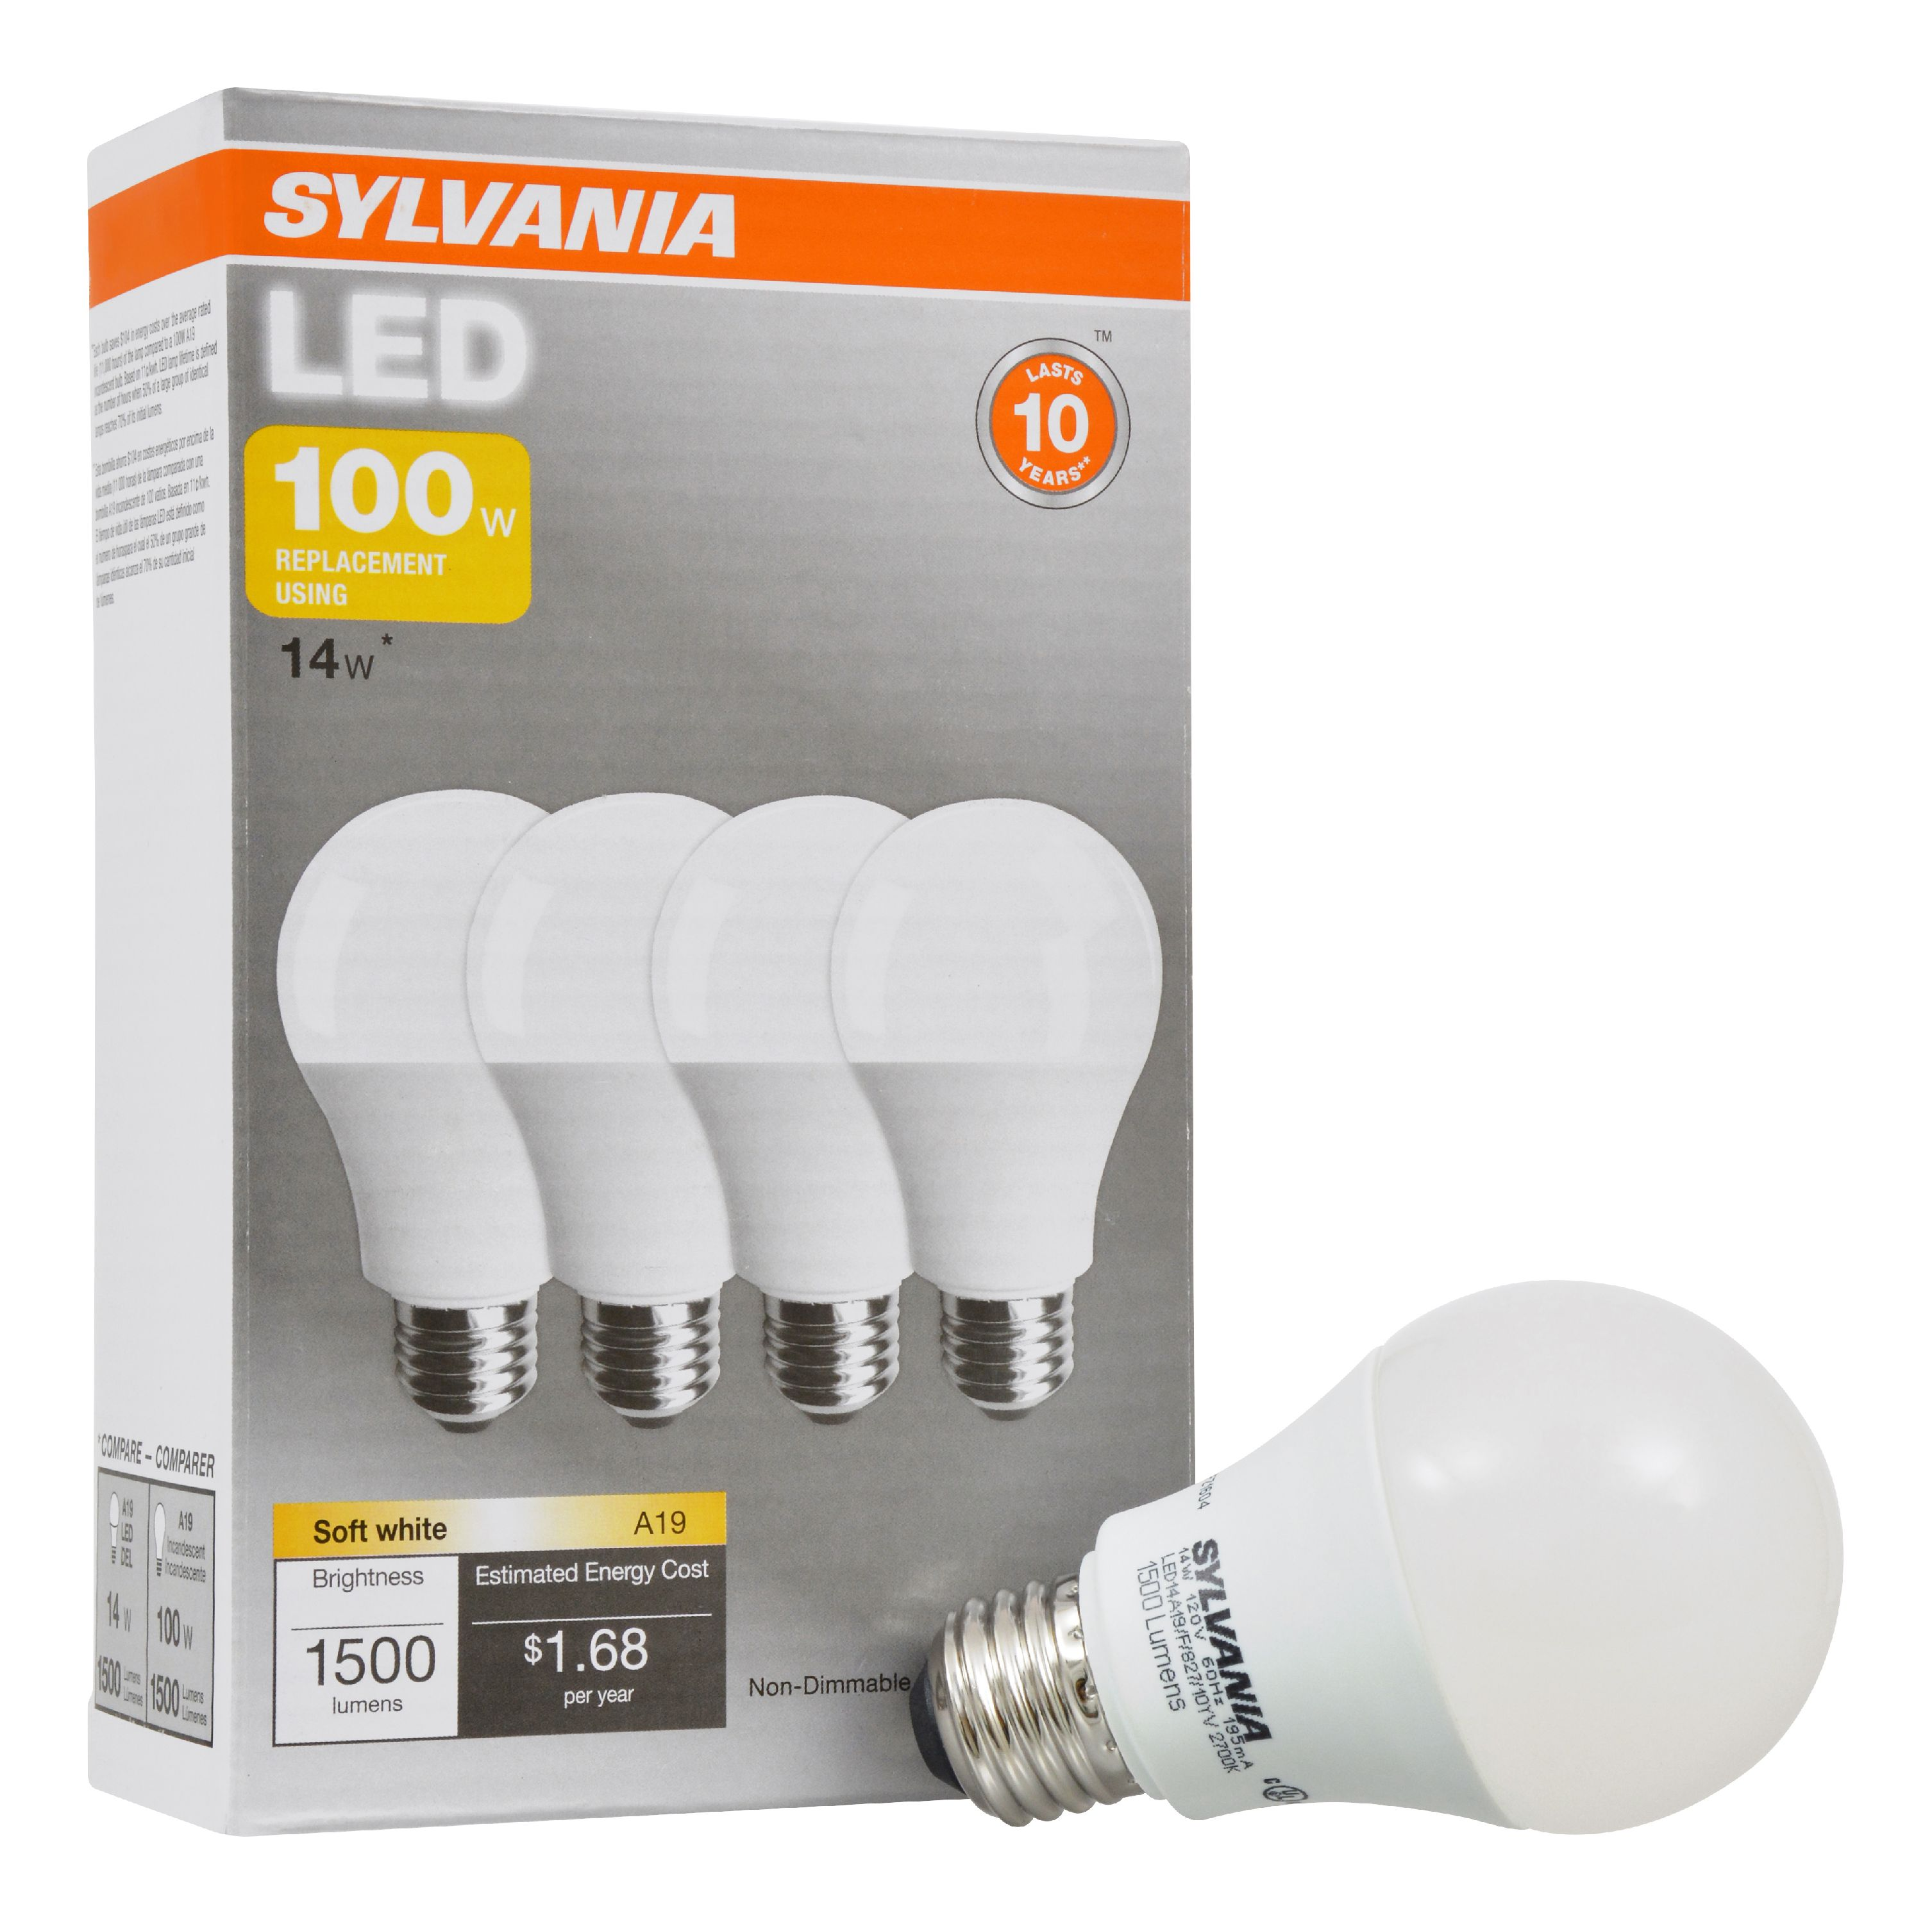 Sylvania LED Light Bulbs, 14W (100W Equivalent), Soft White Bulb, 4-count